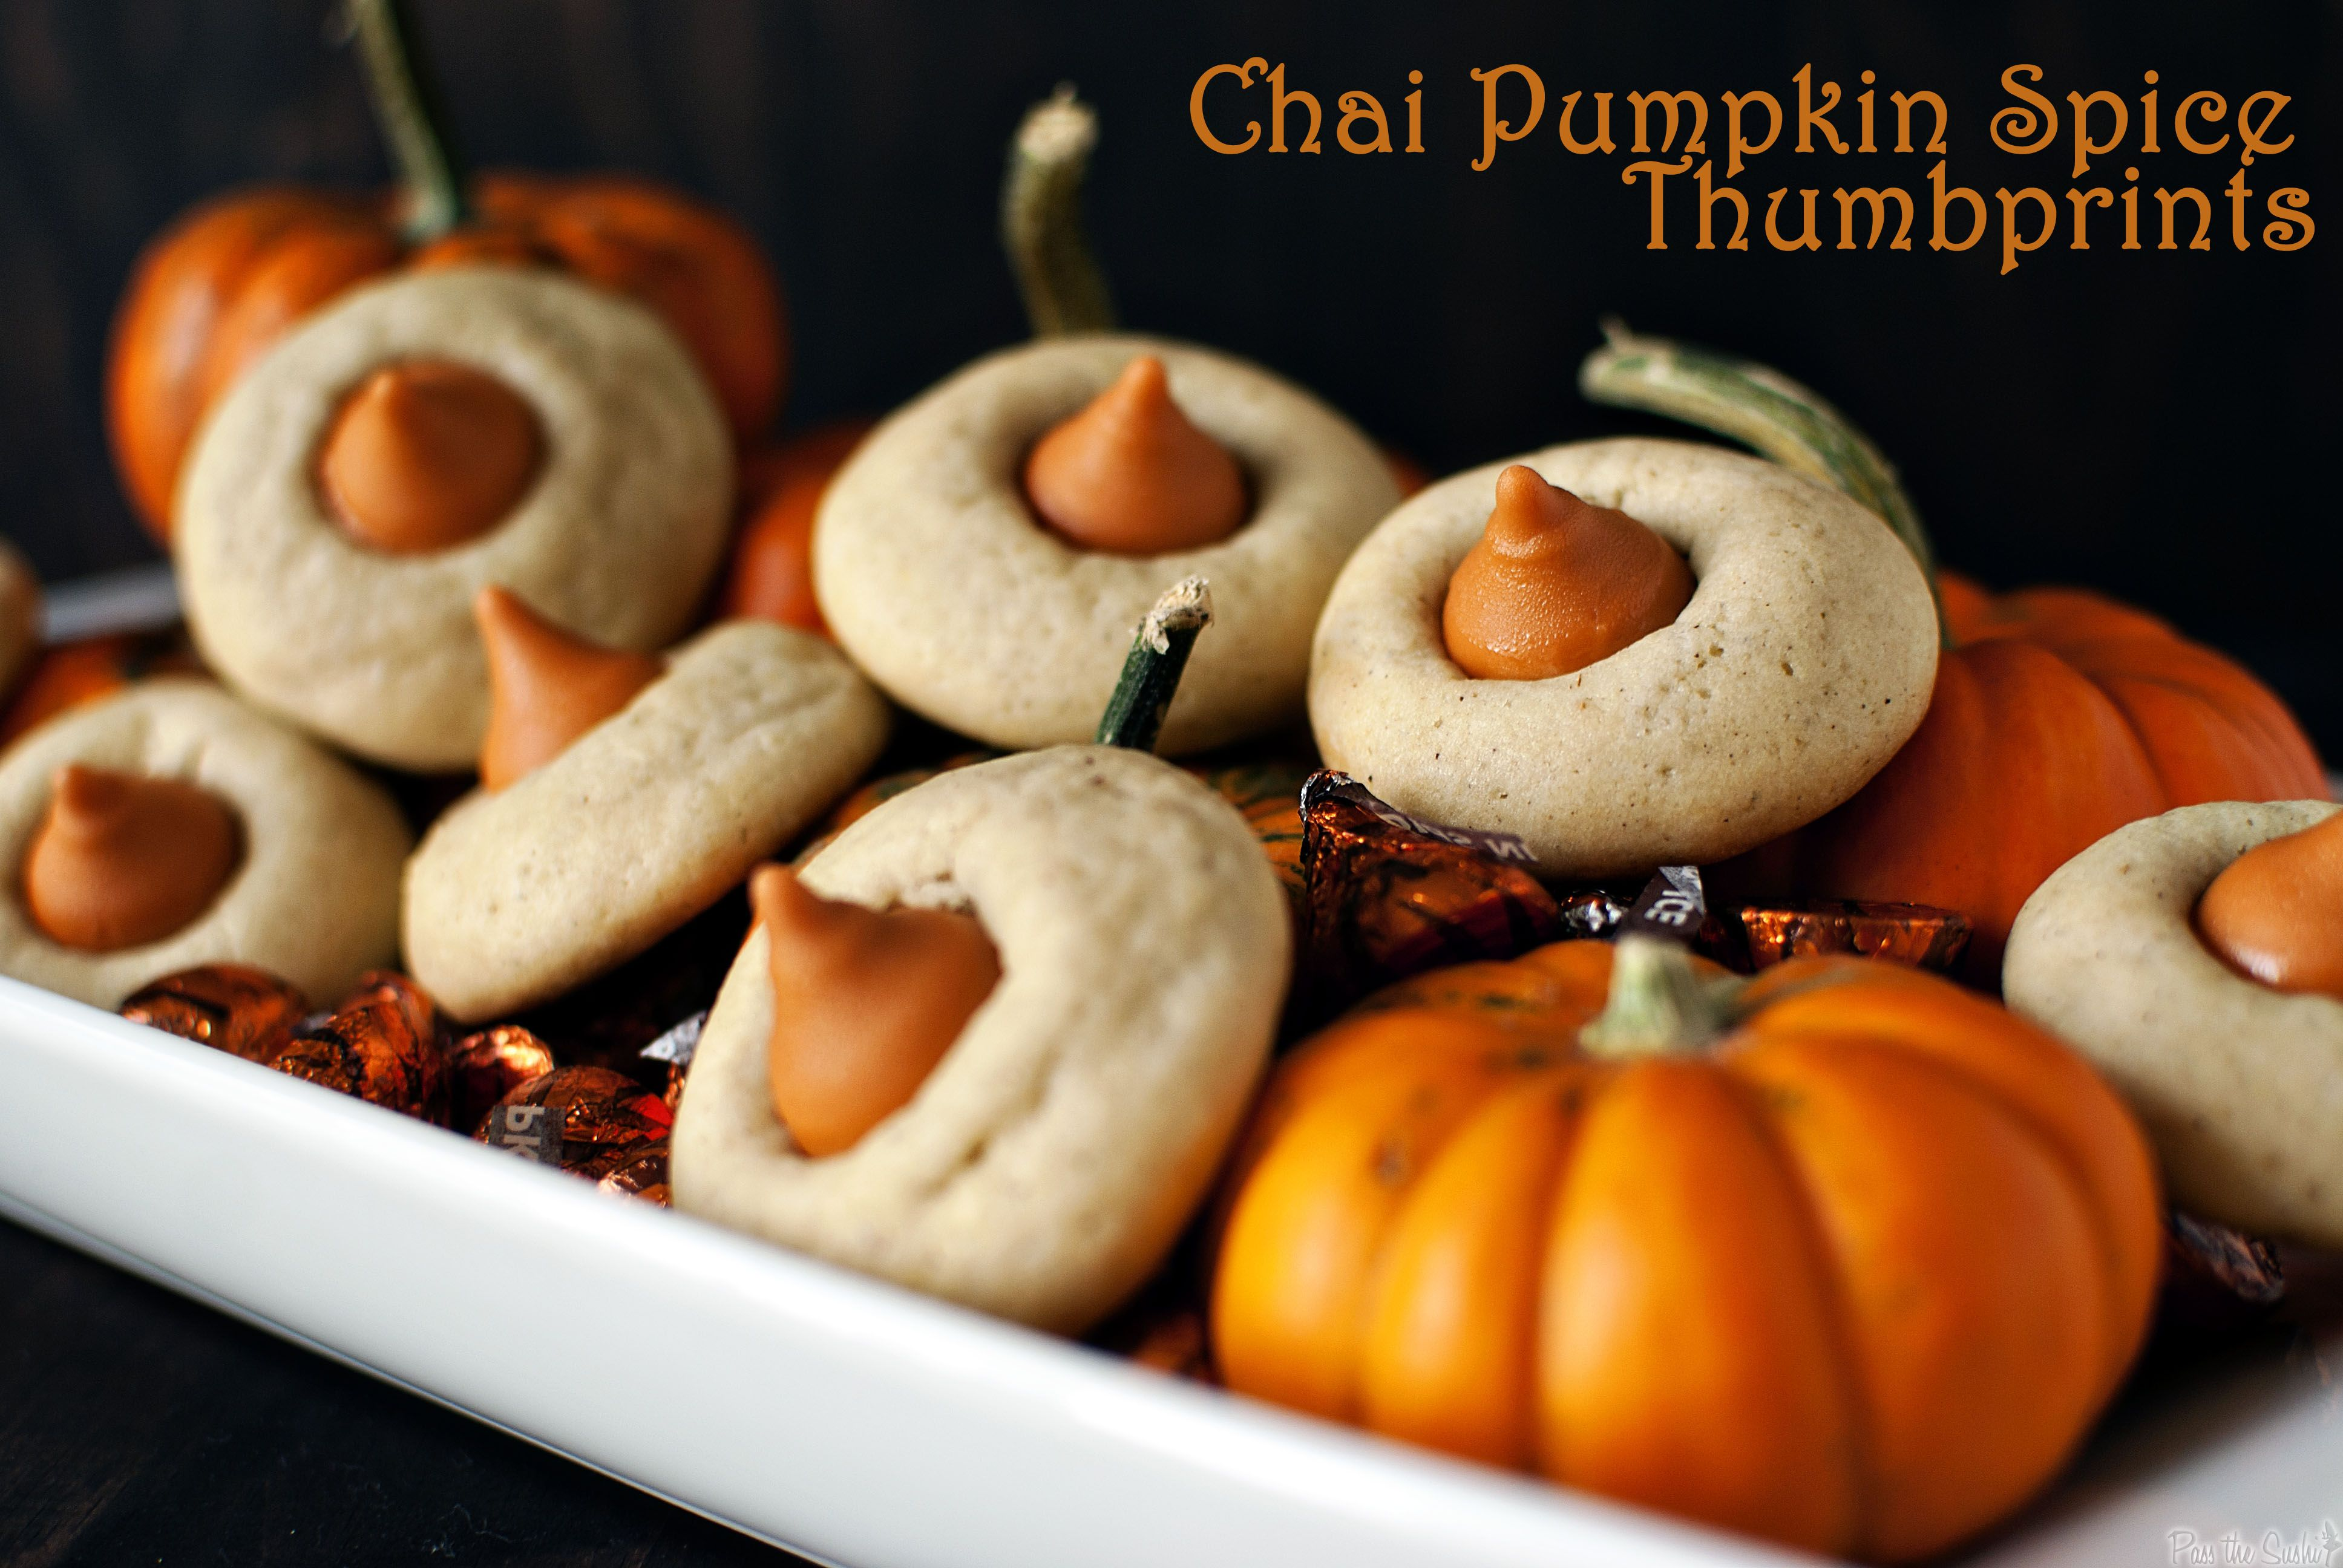 Chai Pumpkin Spice Thumbprints--I can't believe I have never bought or even seen pumpkin spice kisses. I'm in love and this recipe sounds divine...not too sweet--just right.